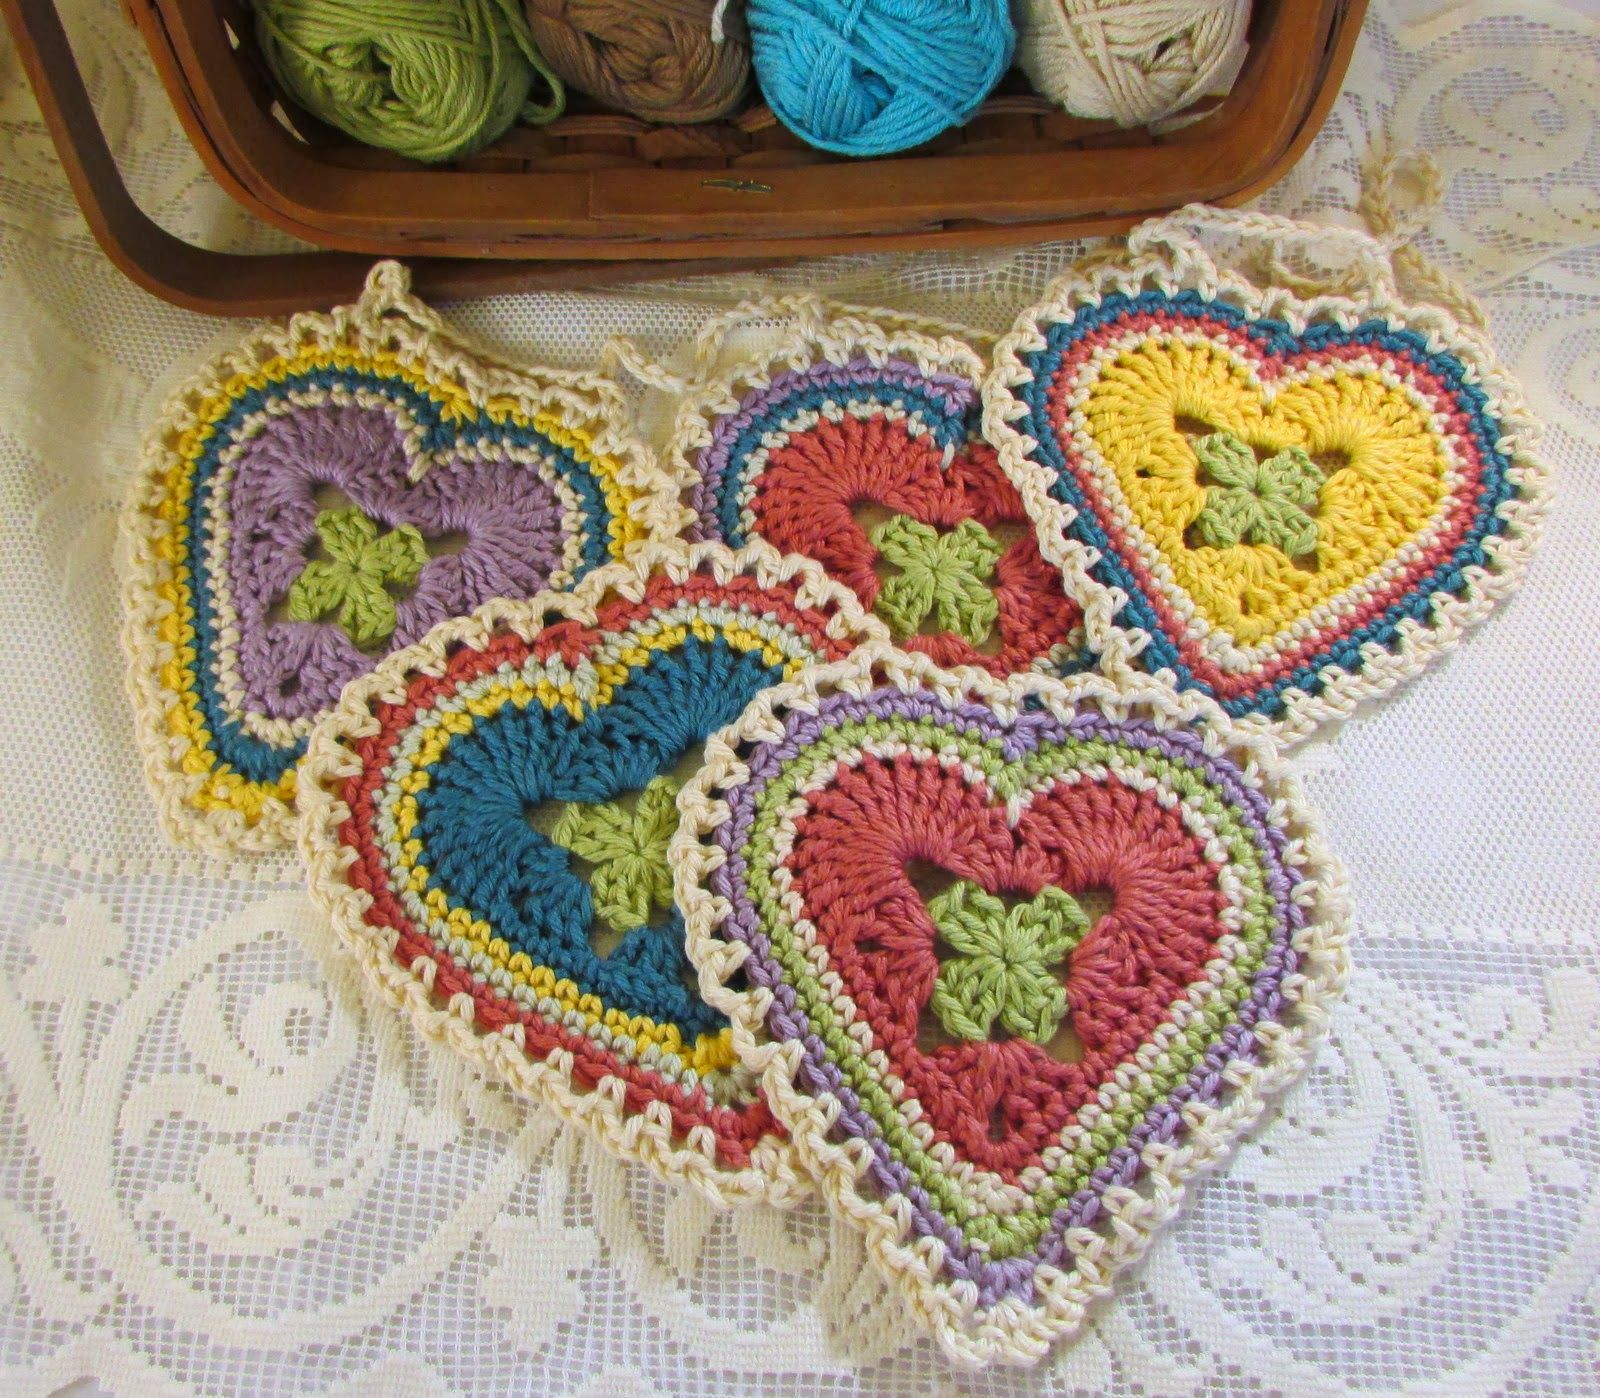 Granny Sweet Heart Pattern Nancy Drew Crochets Crochet Dinah Daisy Dish Cloth So Ive Been Working On A Crocheted That Can Be Used For Coasters Or Attached Tie Cute Wall Buntings After Several Starts And Restarts